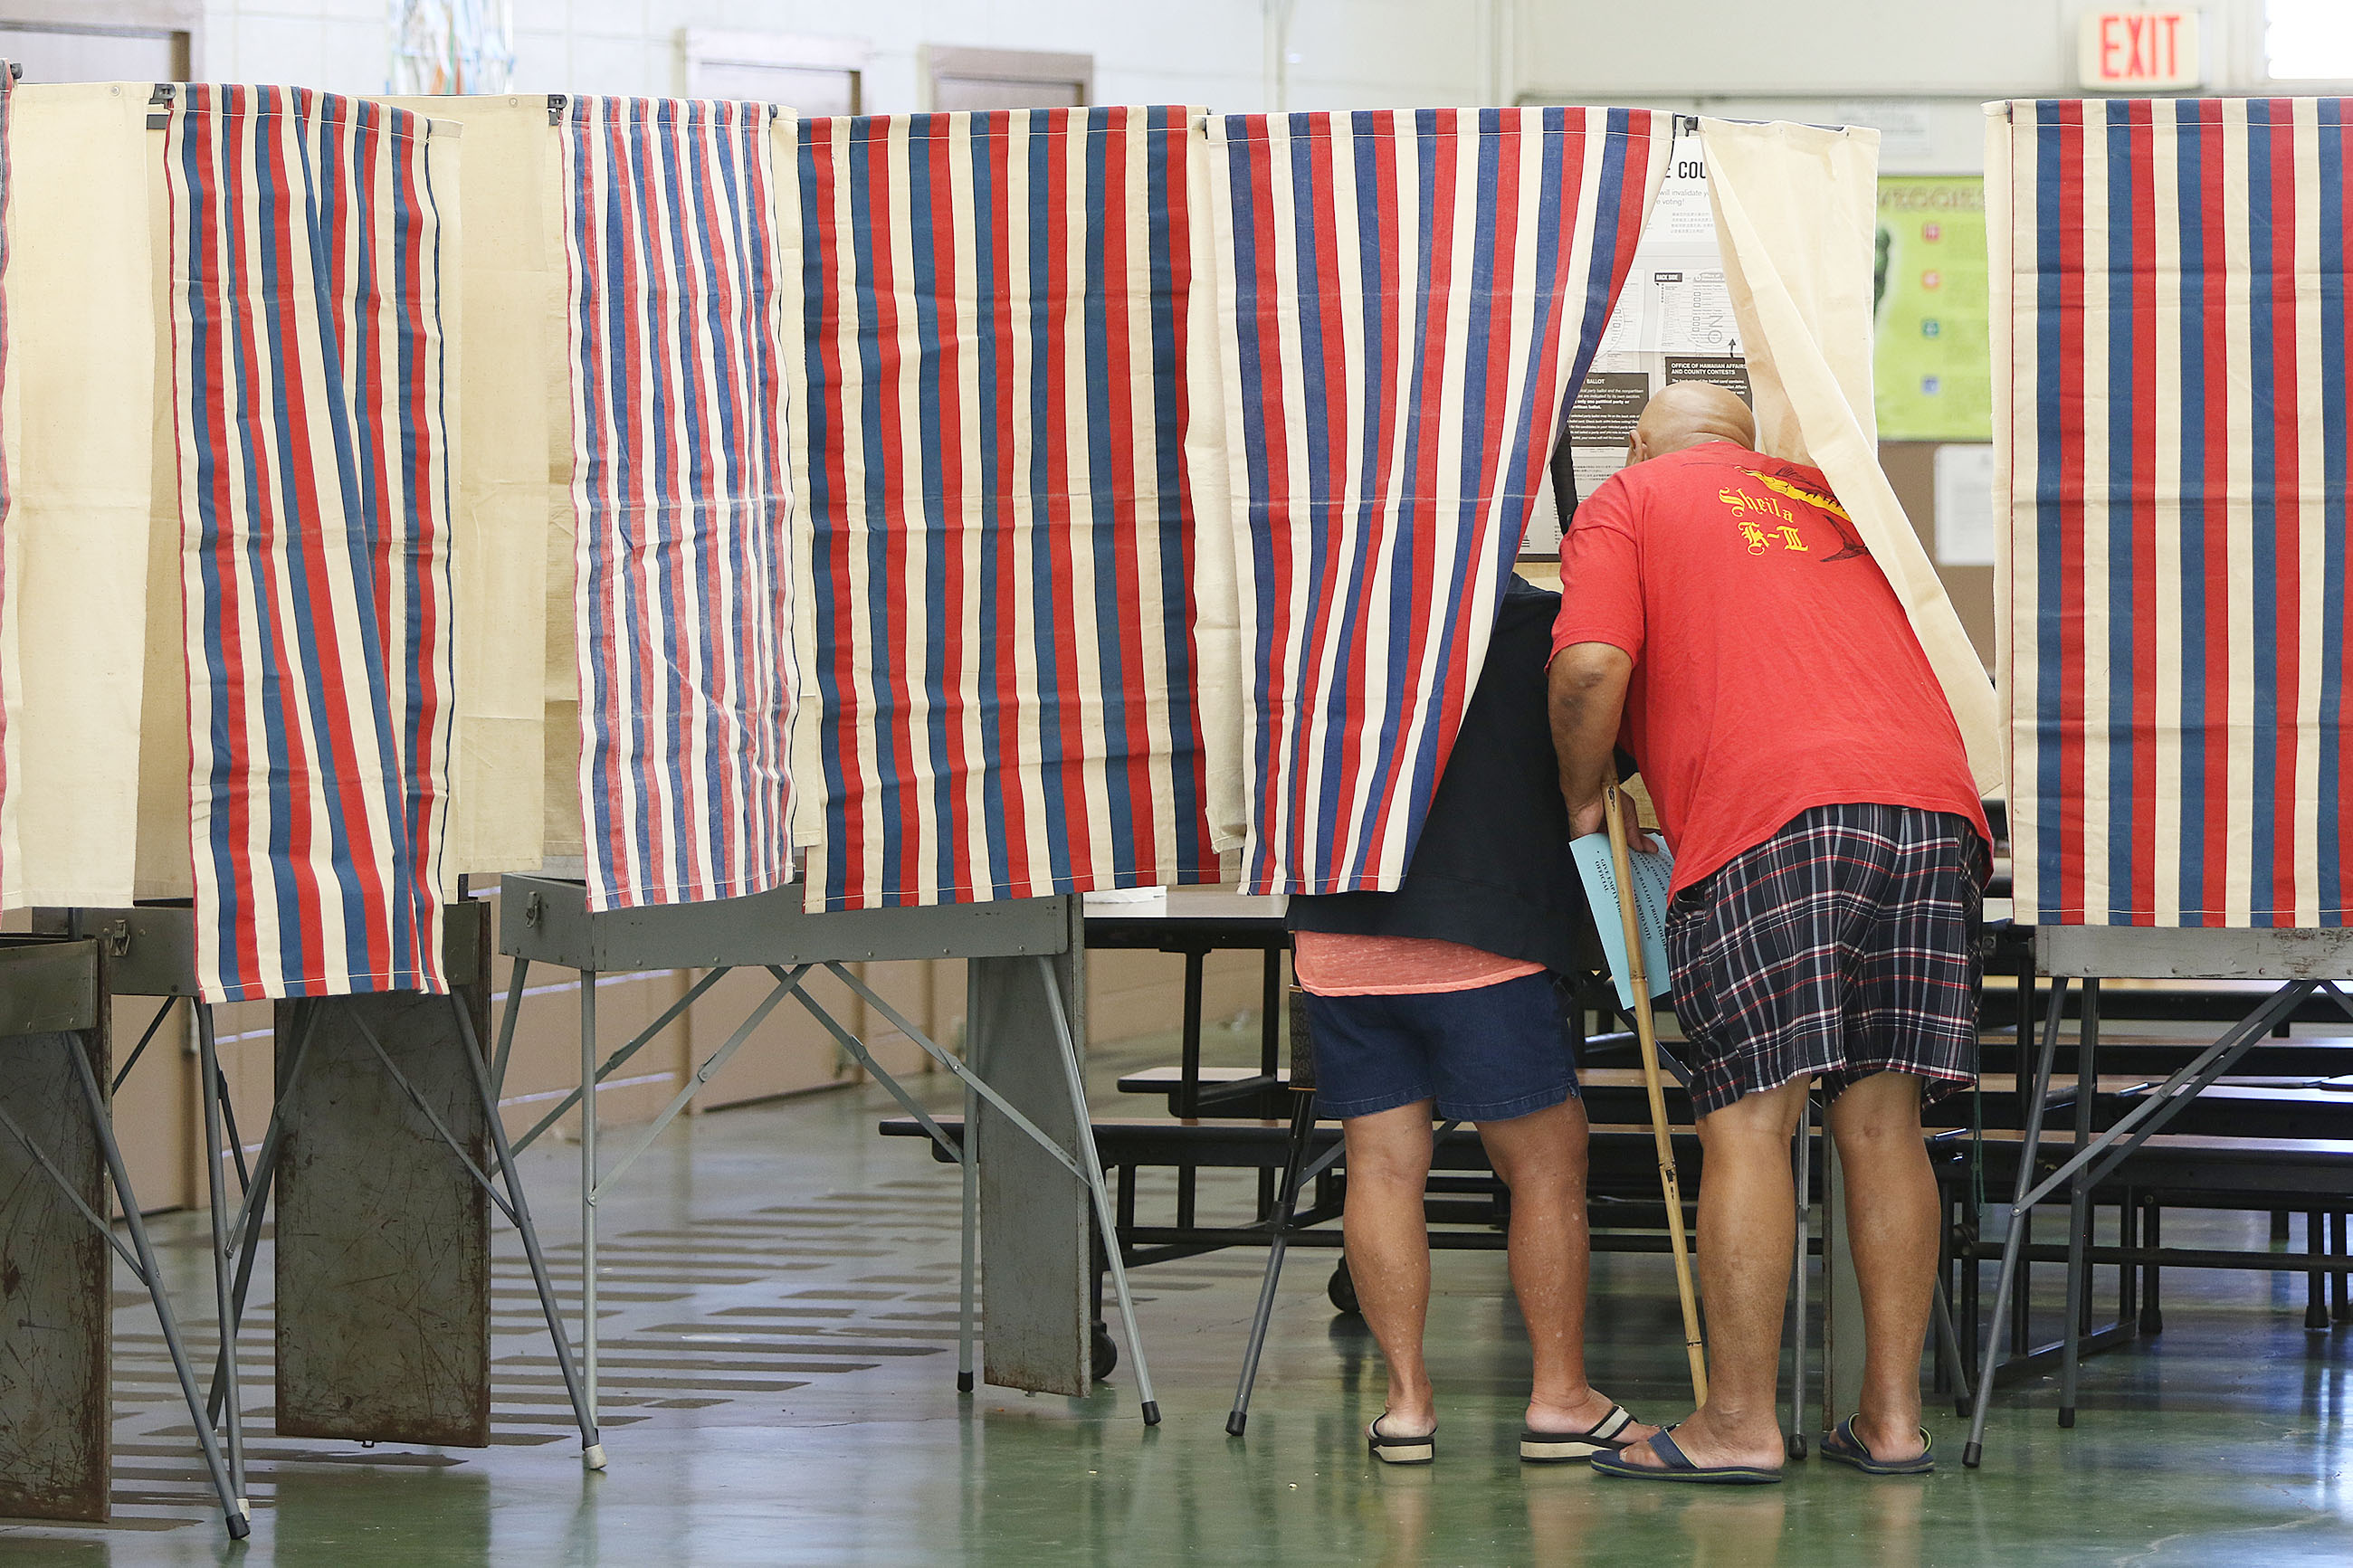 <p>Even though all the other booths were available, a couple voted in just one early Saturday at Kawananakoa Middle School. (Cory Lum/Civil Beat)</p>